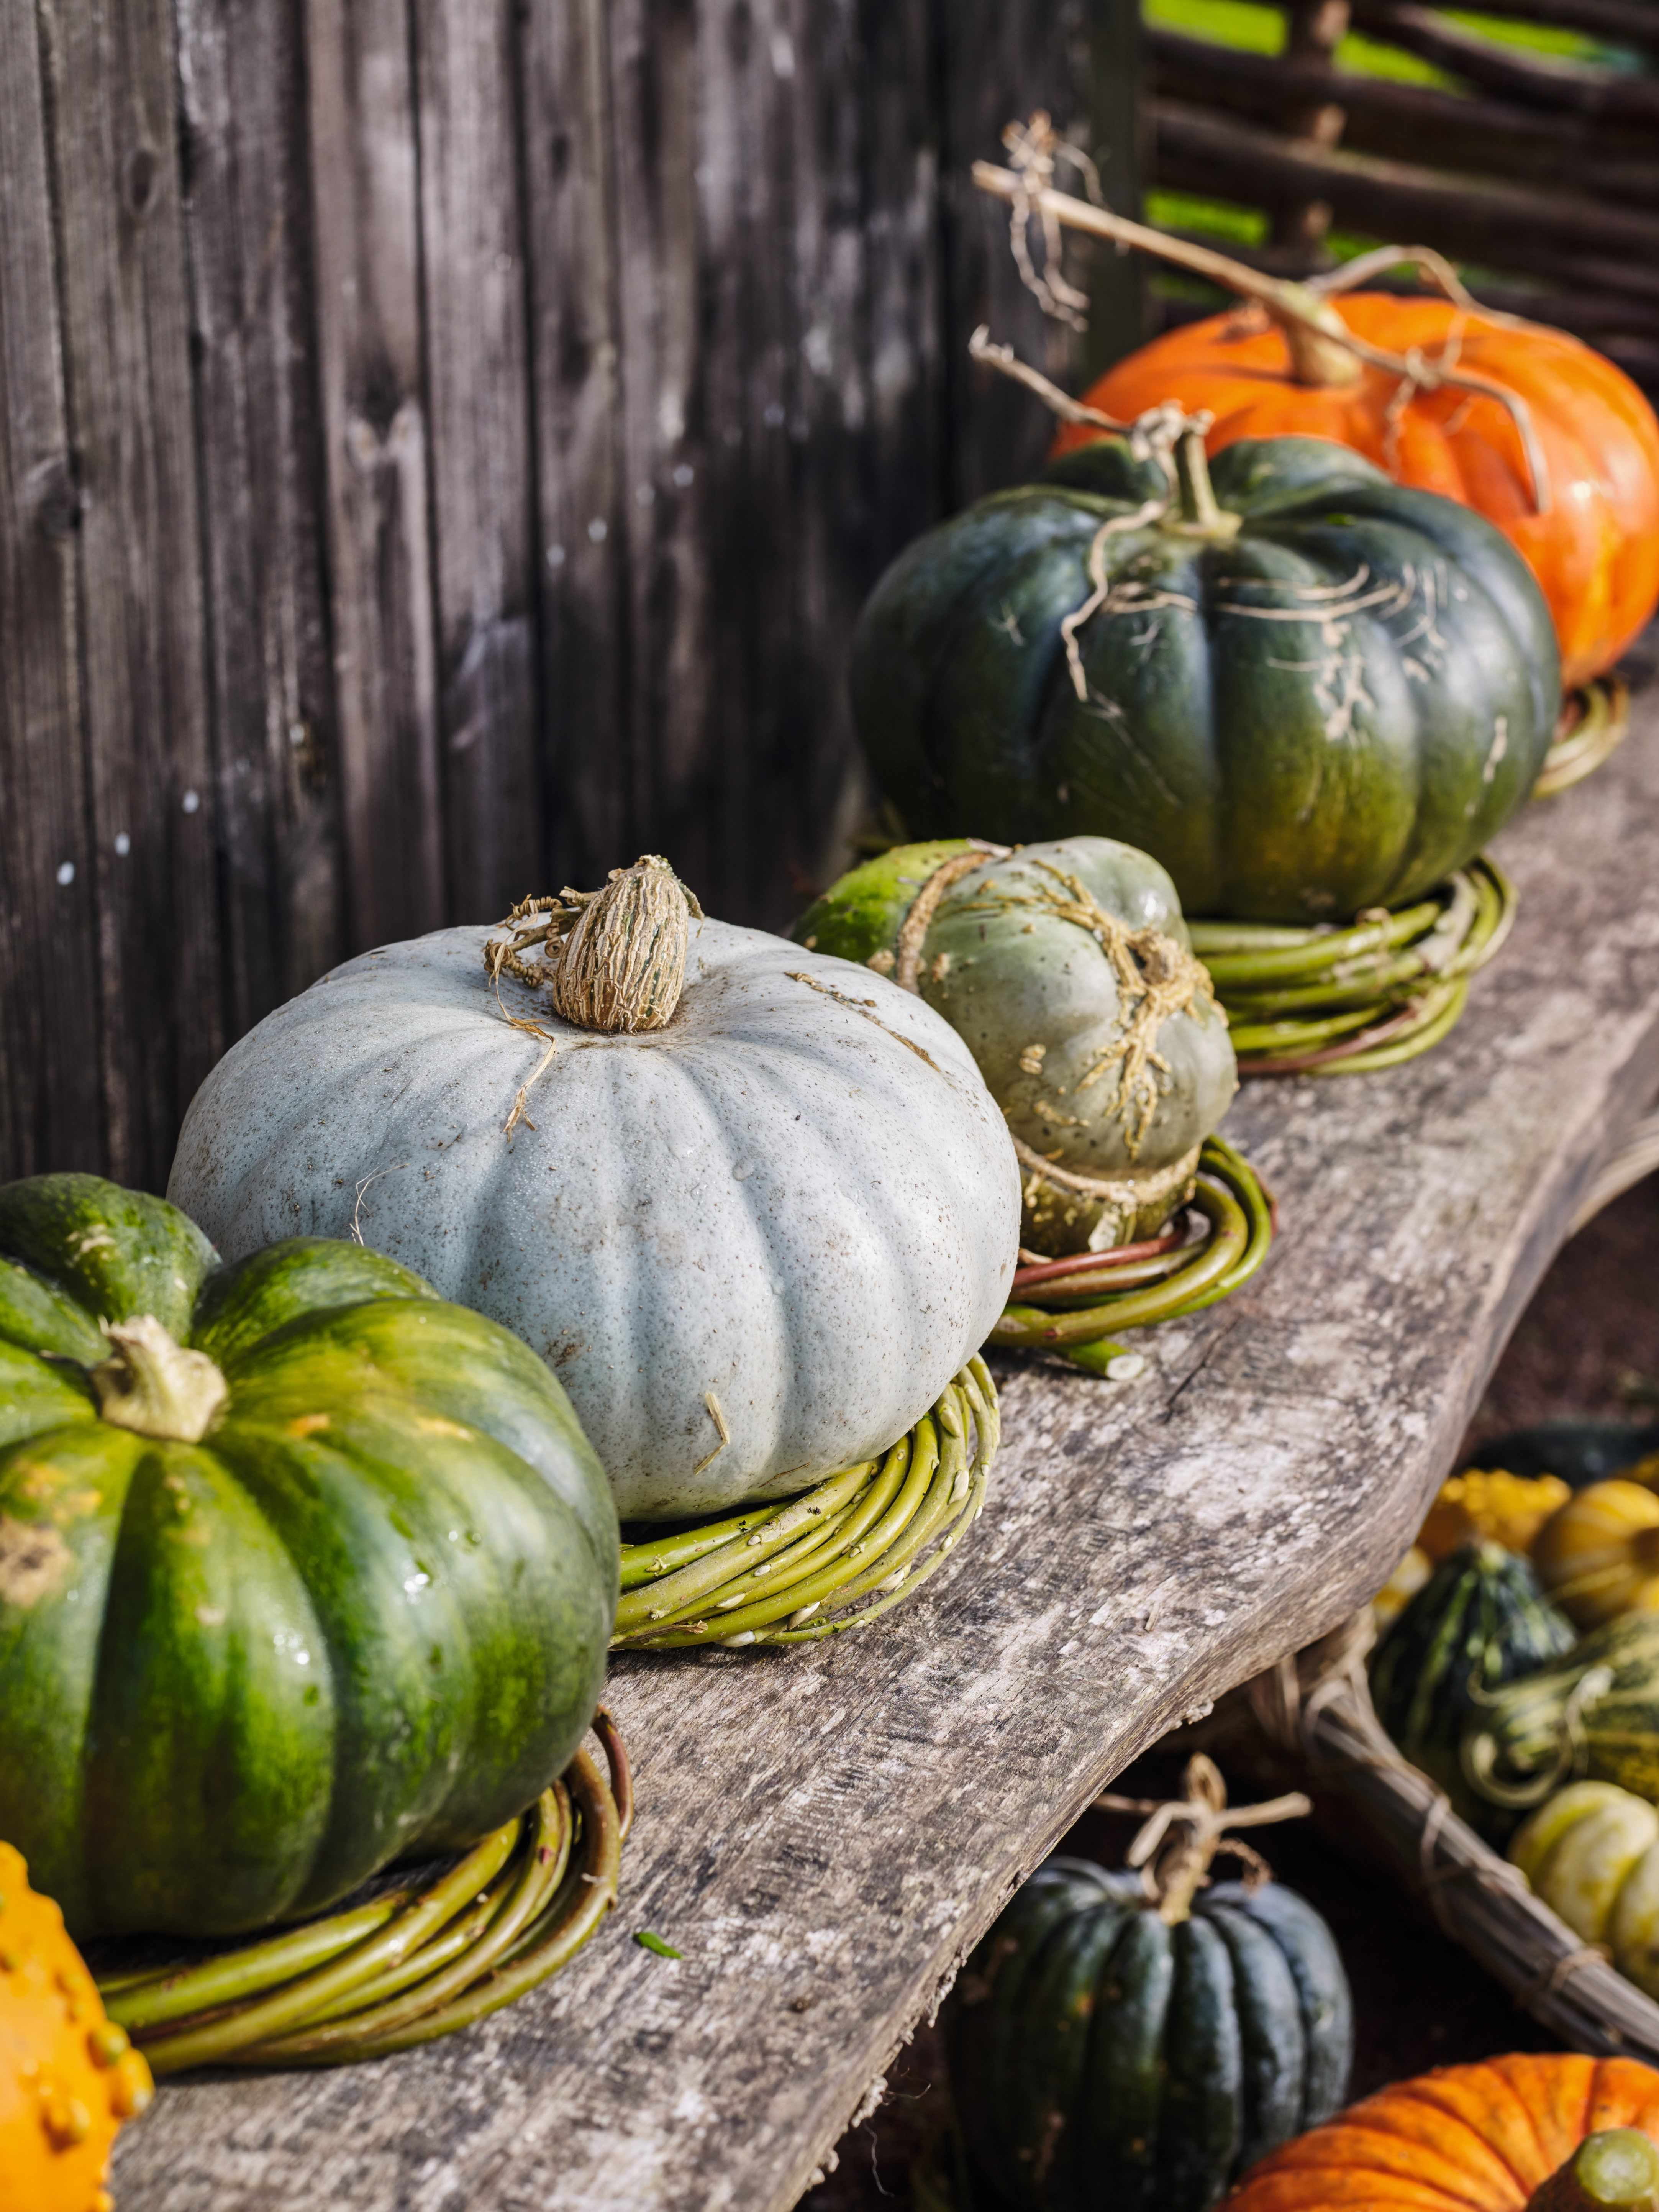 Natural support for pumpkins